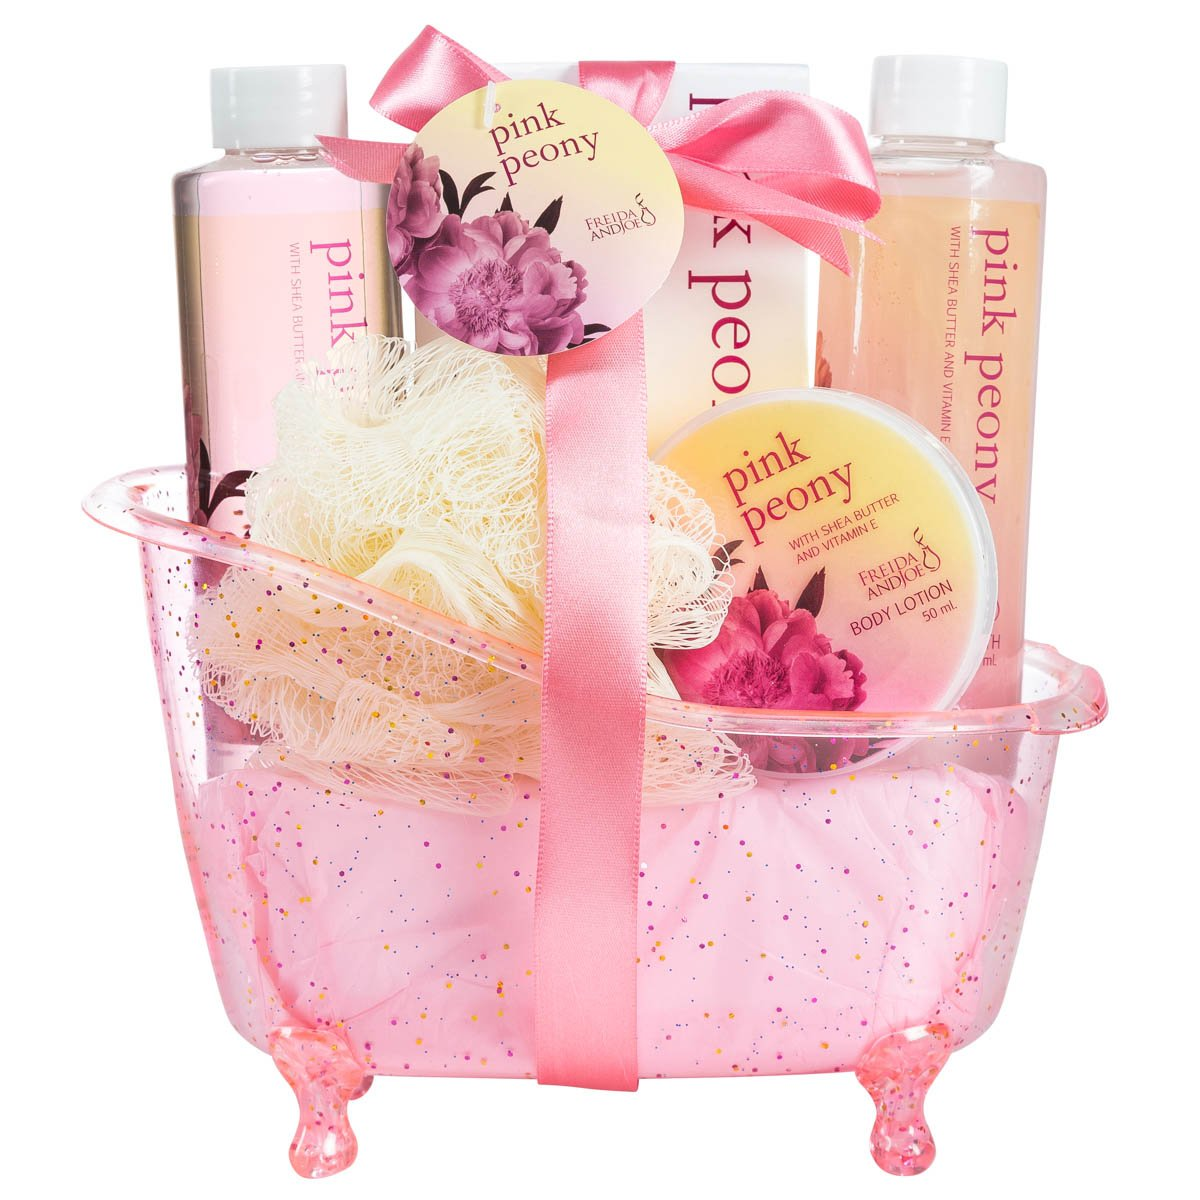 white rose jasmine gold tub spa bath gift set bath and shower product sets beauty